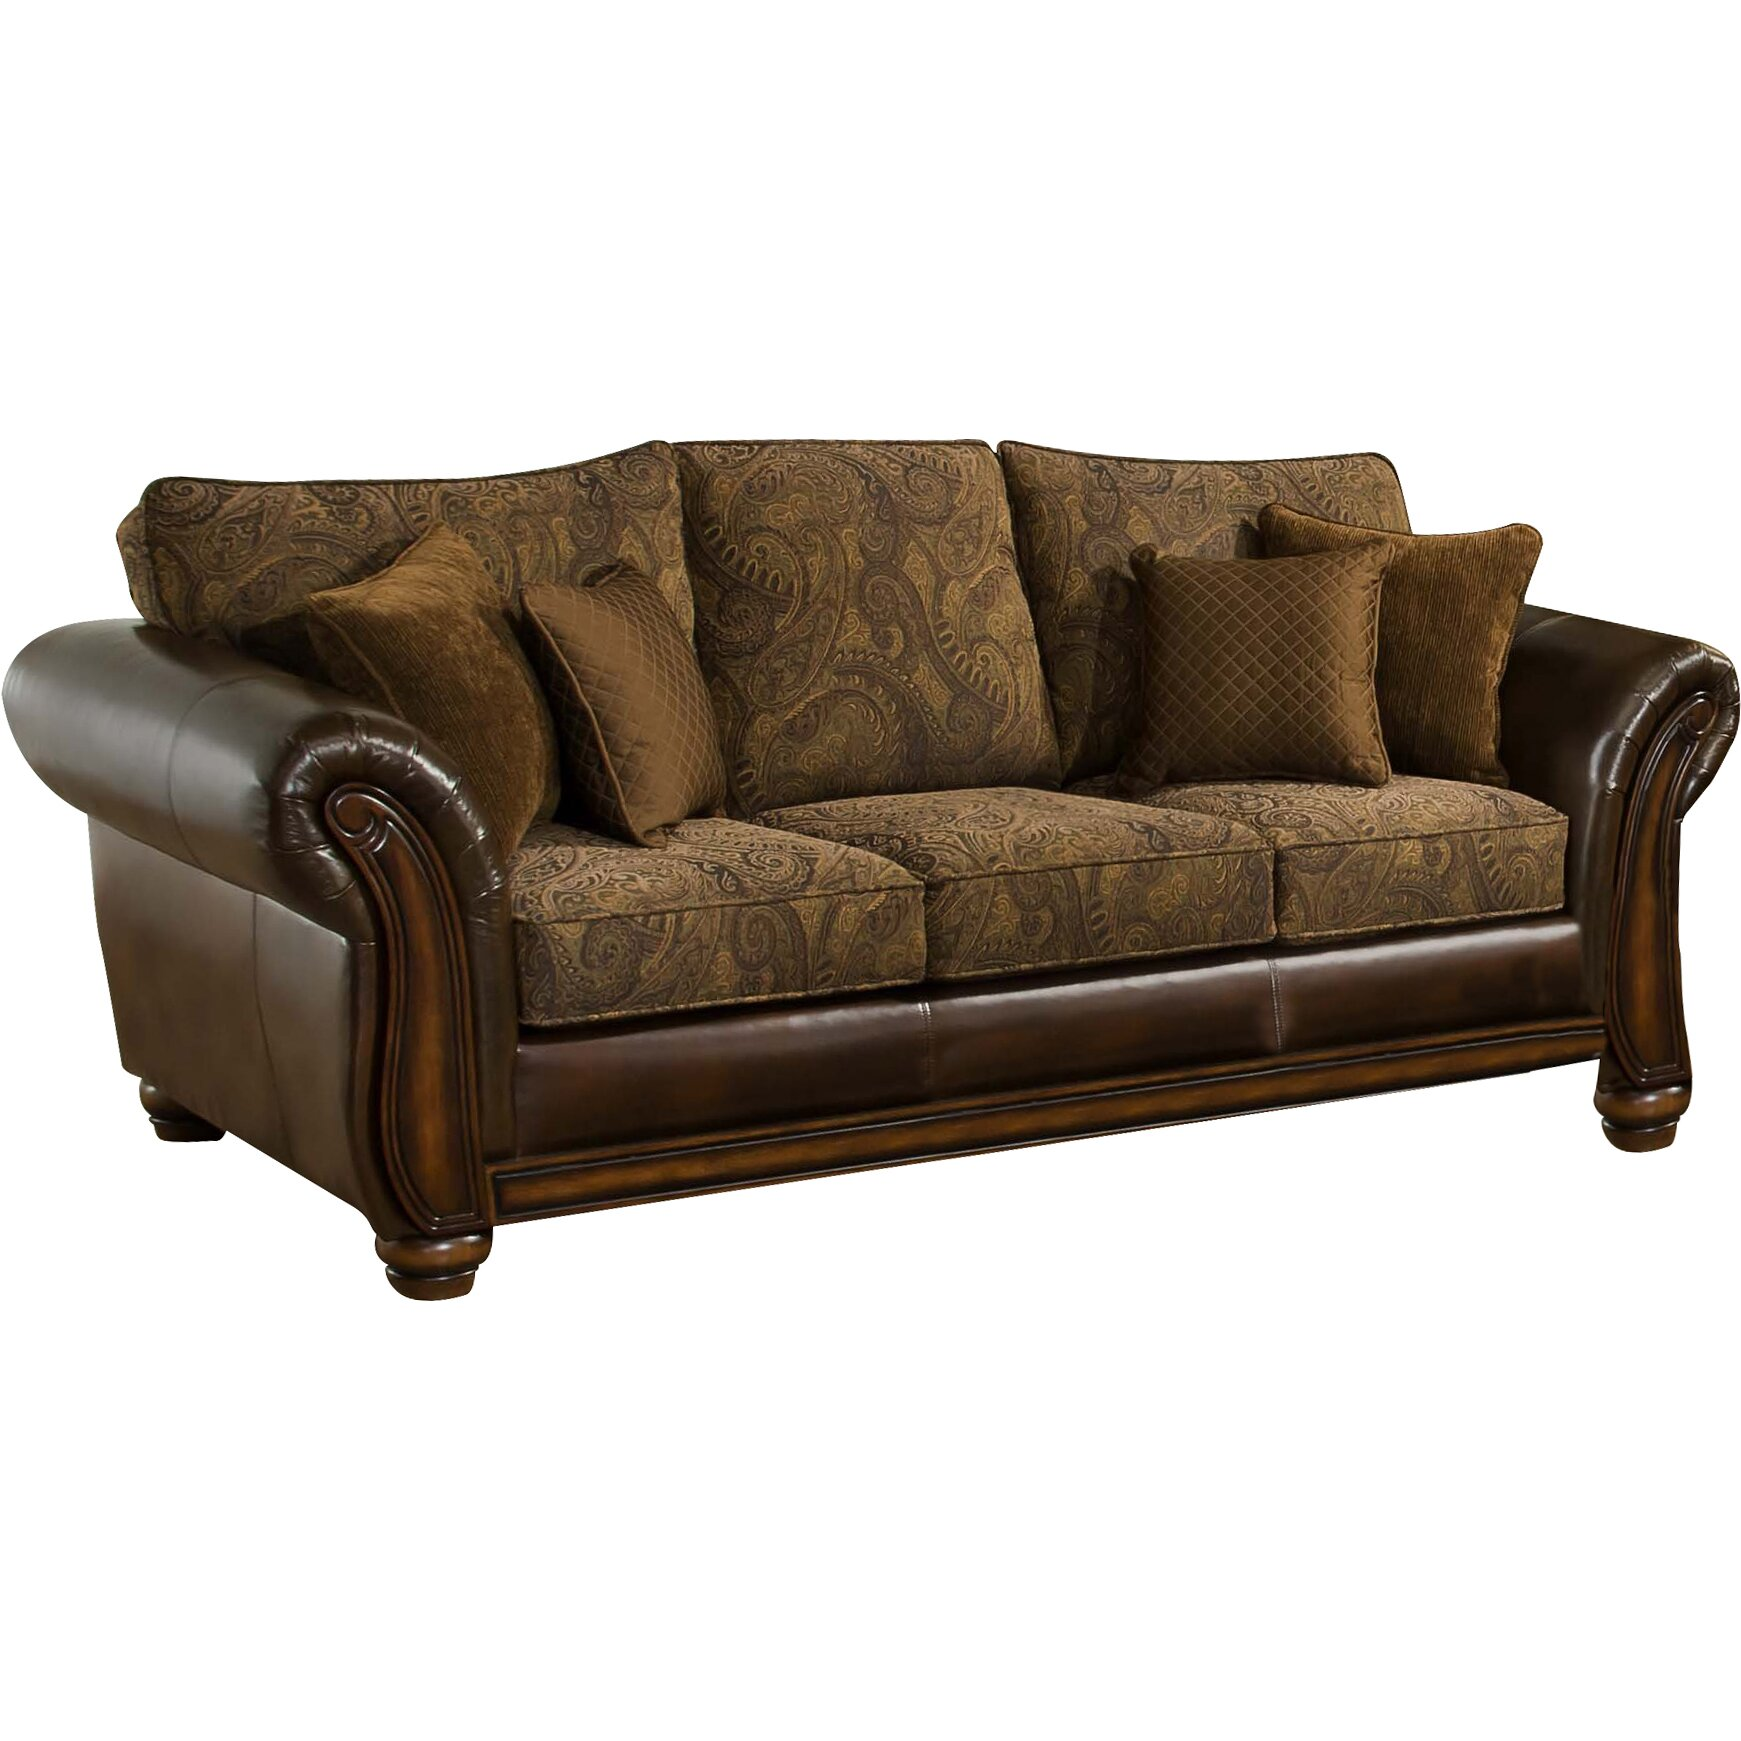 Astoria Grand Aske Living Room Collection Reviews Wayfair